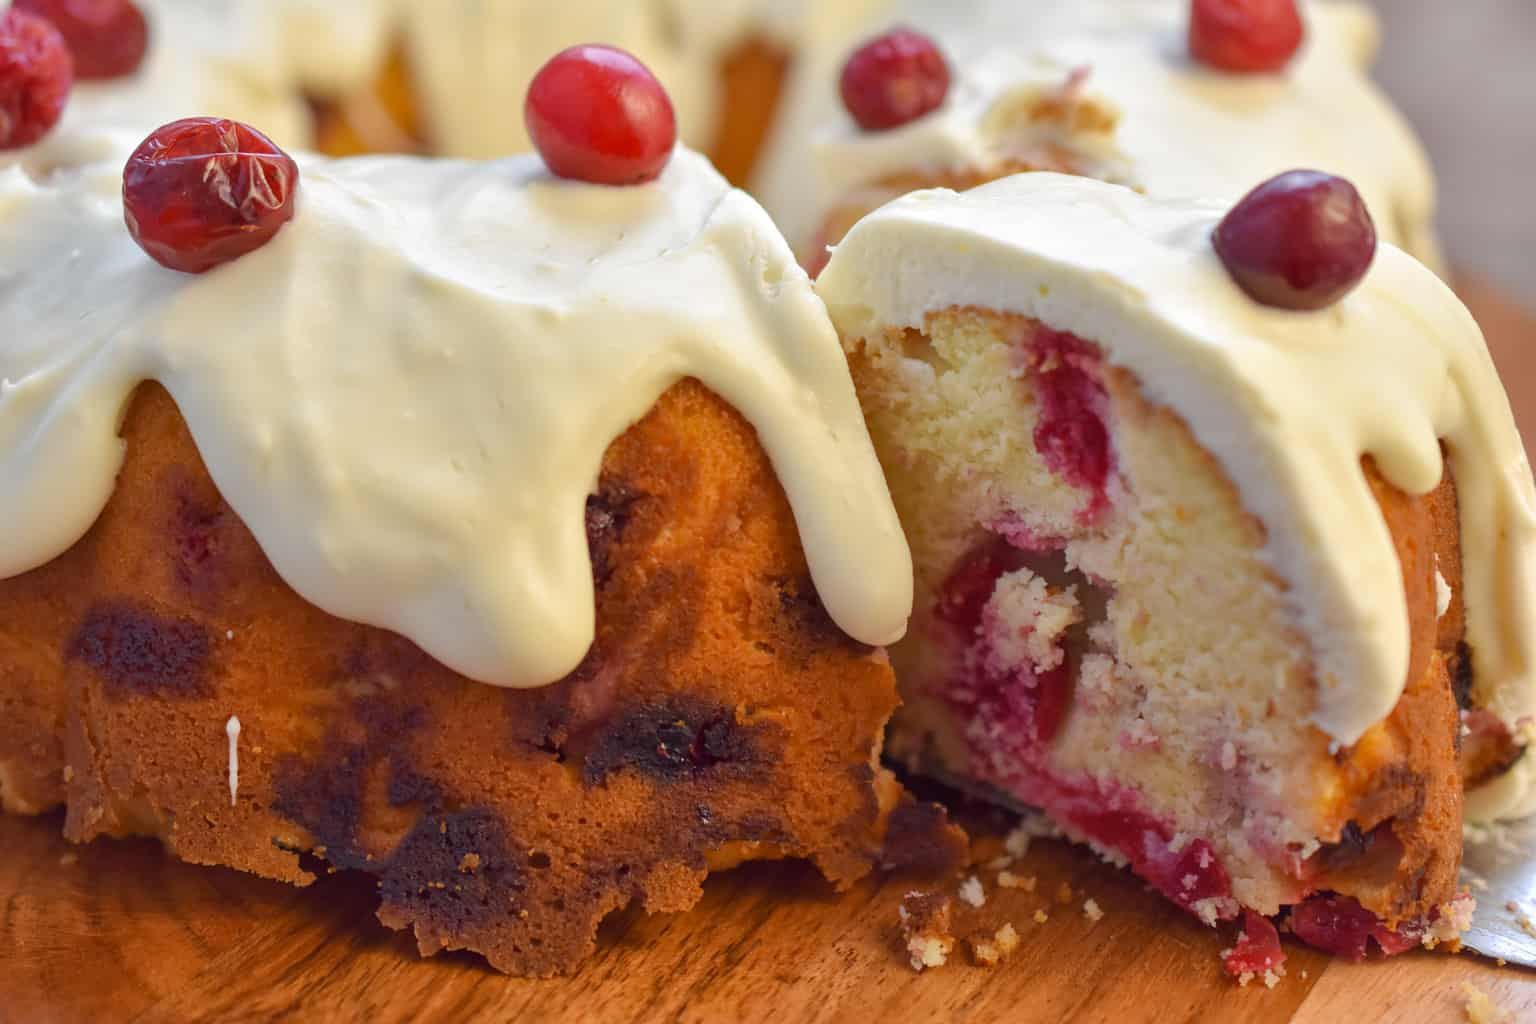 keto cranberry cake being sliced on wood cake stand